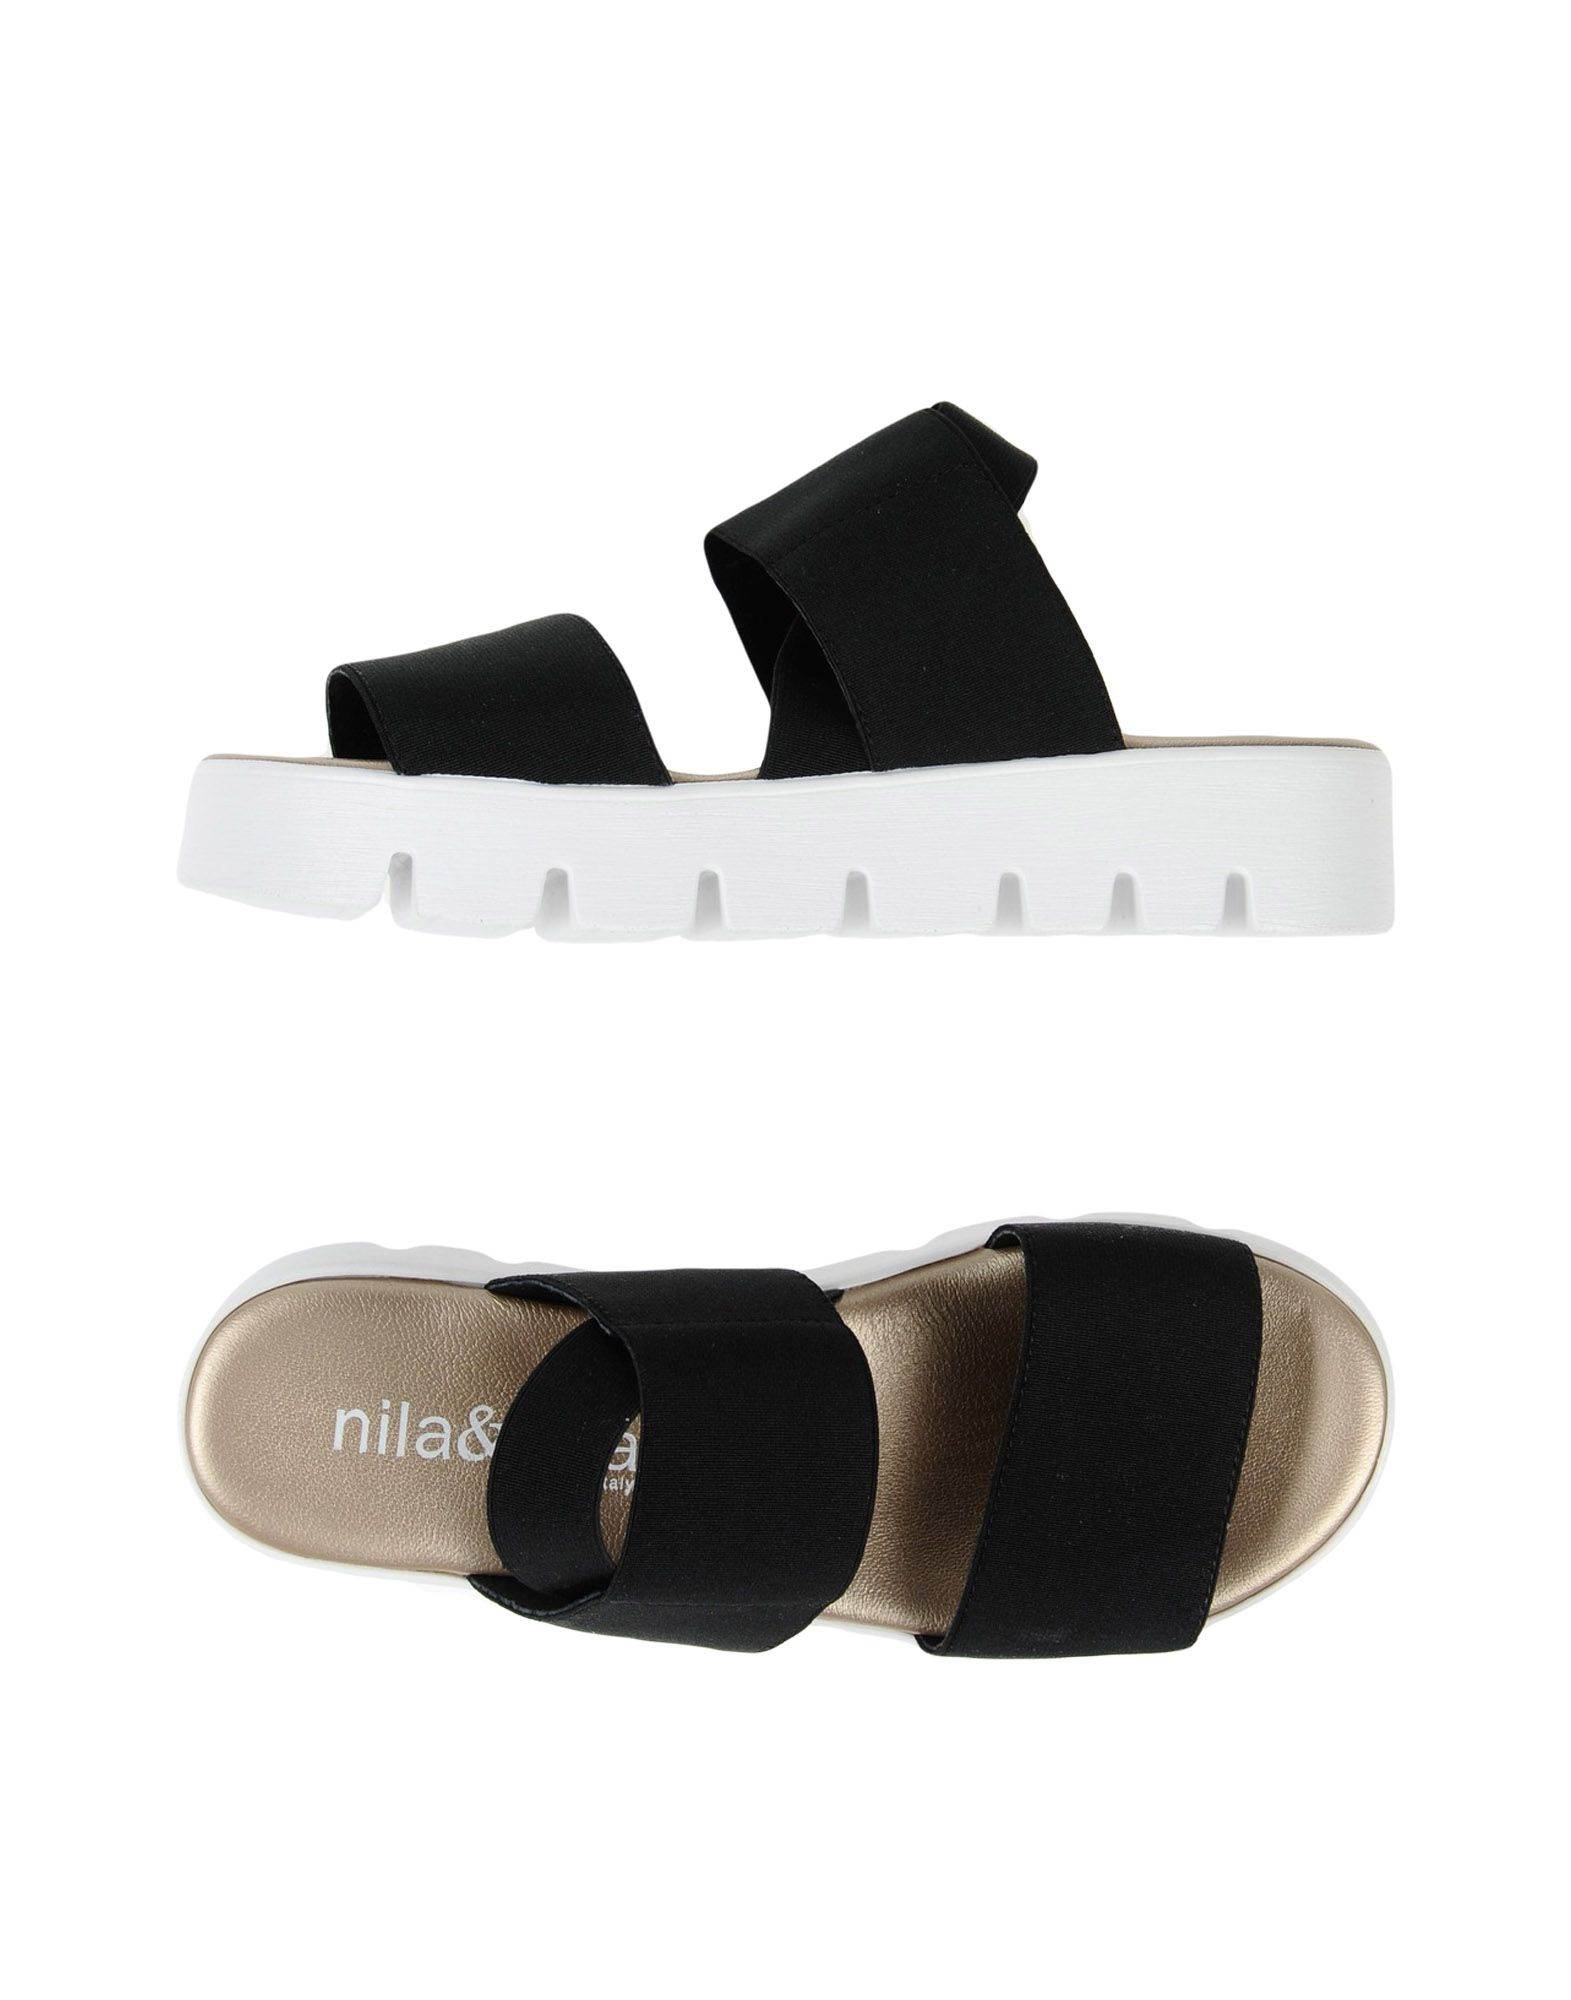 Nila & Nila Nila Sandals - Women Nila & & Nila Sandals online on  United Kingdom - 11443440SE 9bad12